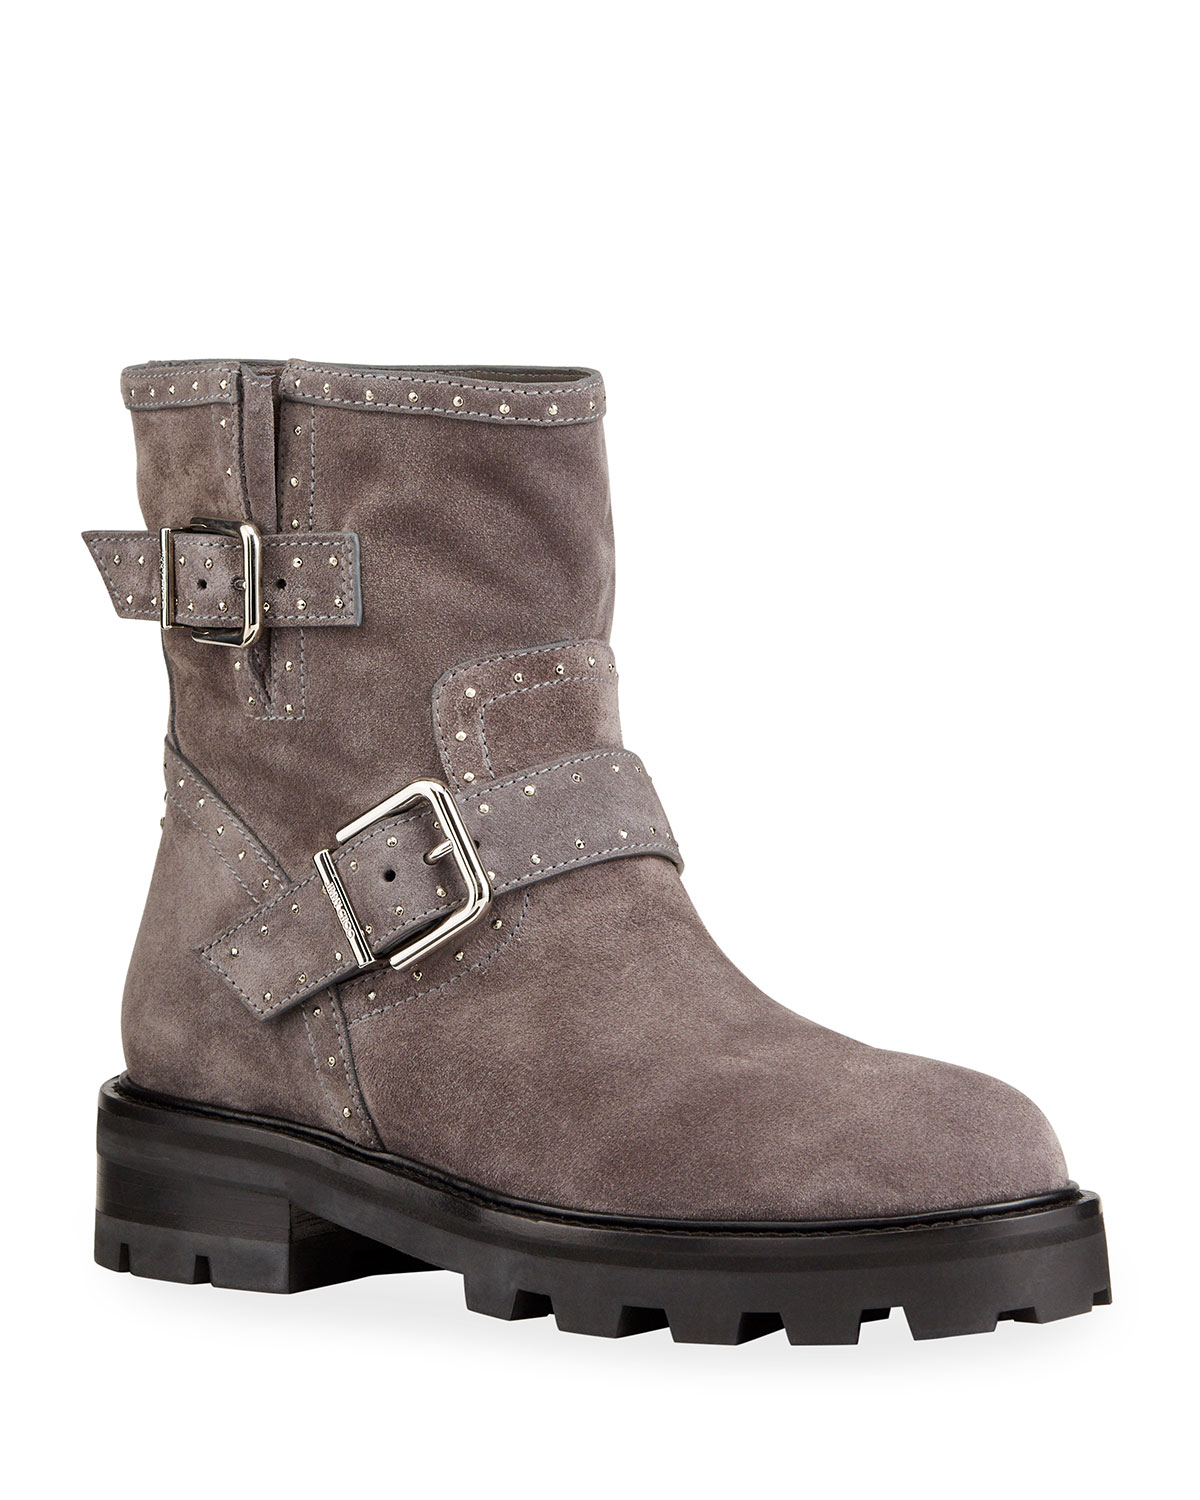 Jimmy Choo Youth Studded Suede Moto Booties